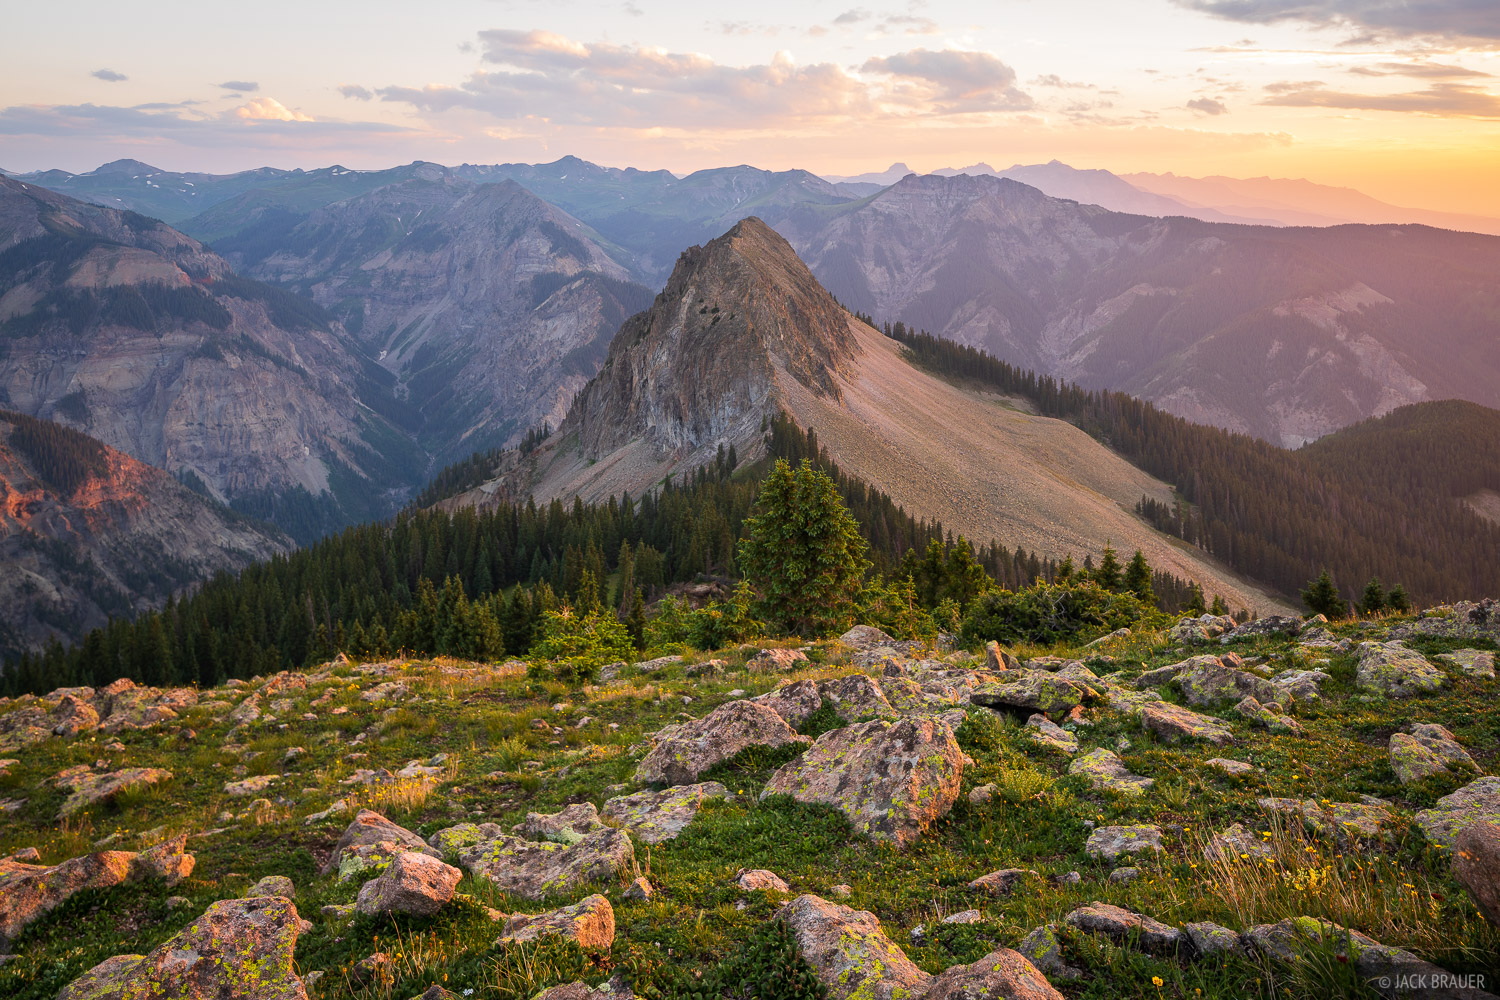 Sunset over the deep gorge of Cow Creek, in the San Juan Mountains of southwest Colorado. The Sneffels Range rises in the distance...